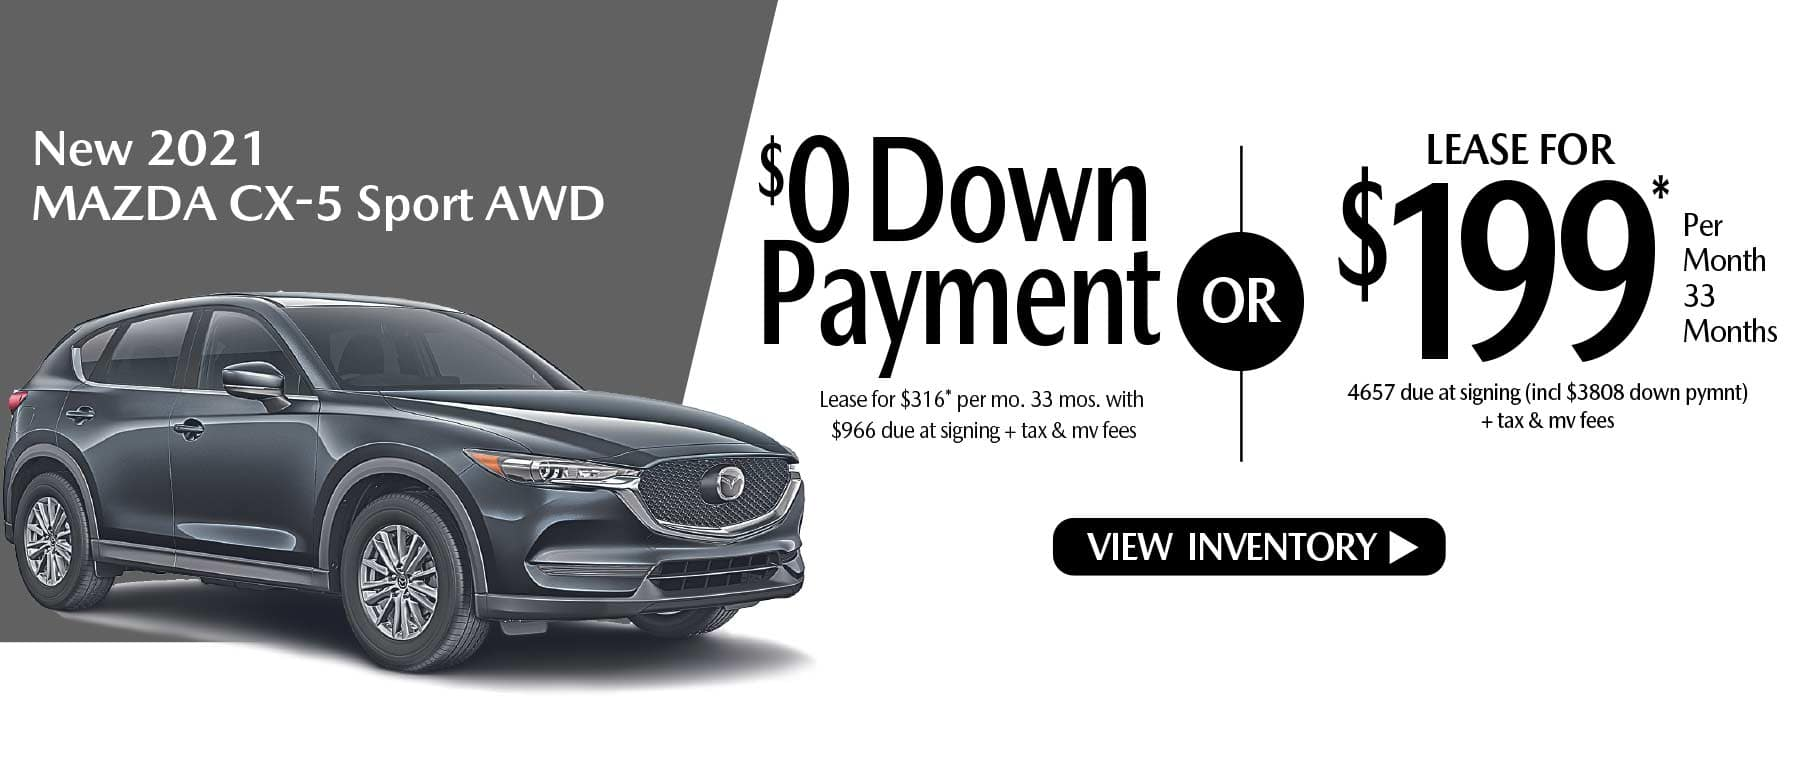 dhiu CX-5 New Lease Special Offer Mazda of New Rochelle NY